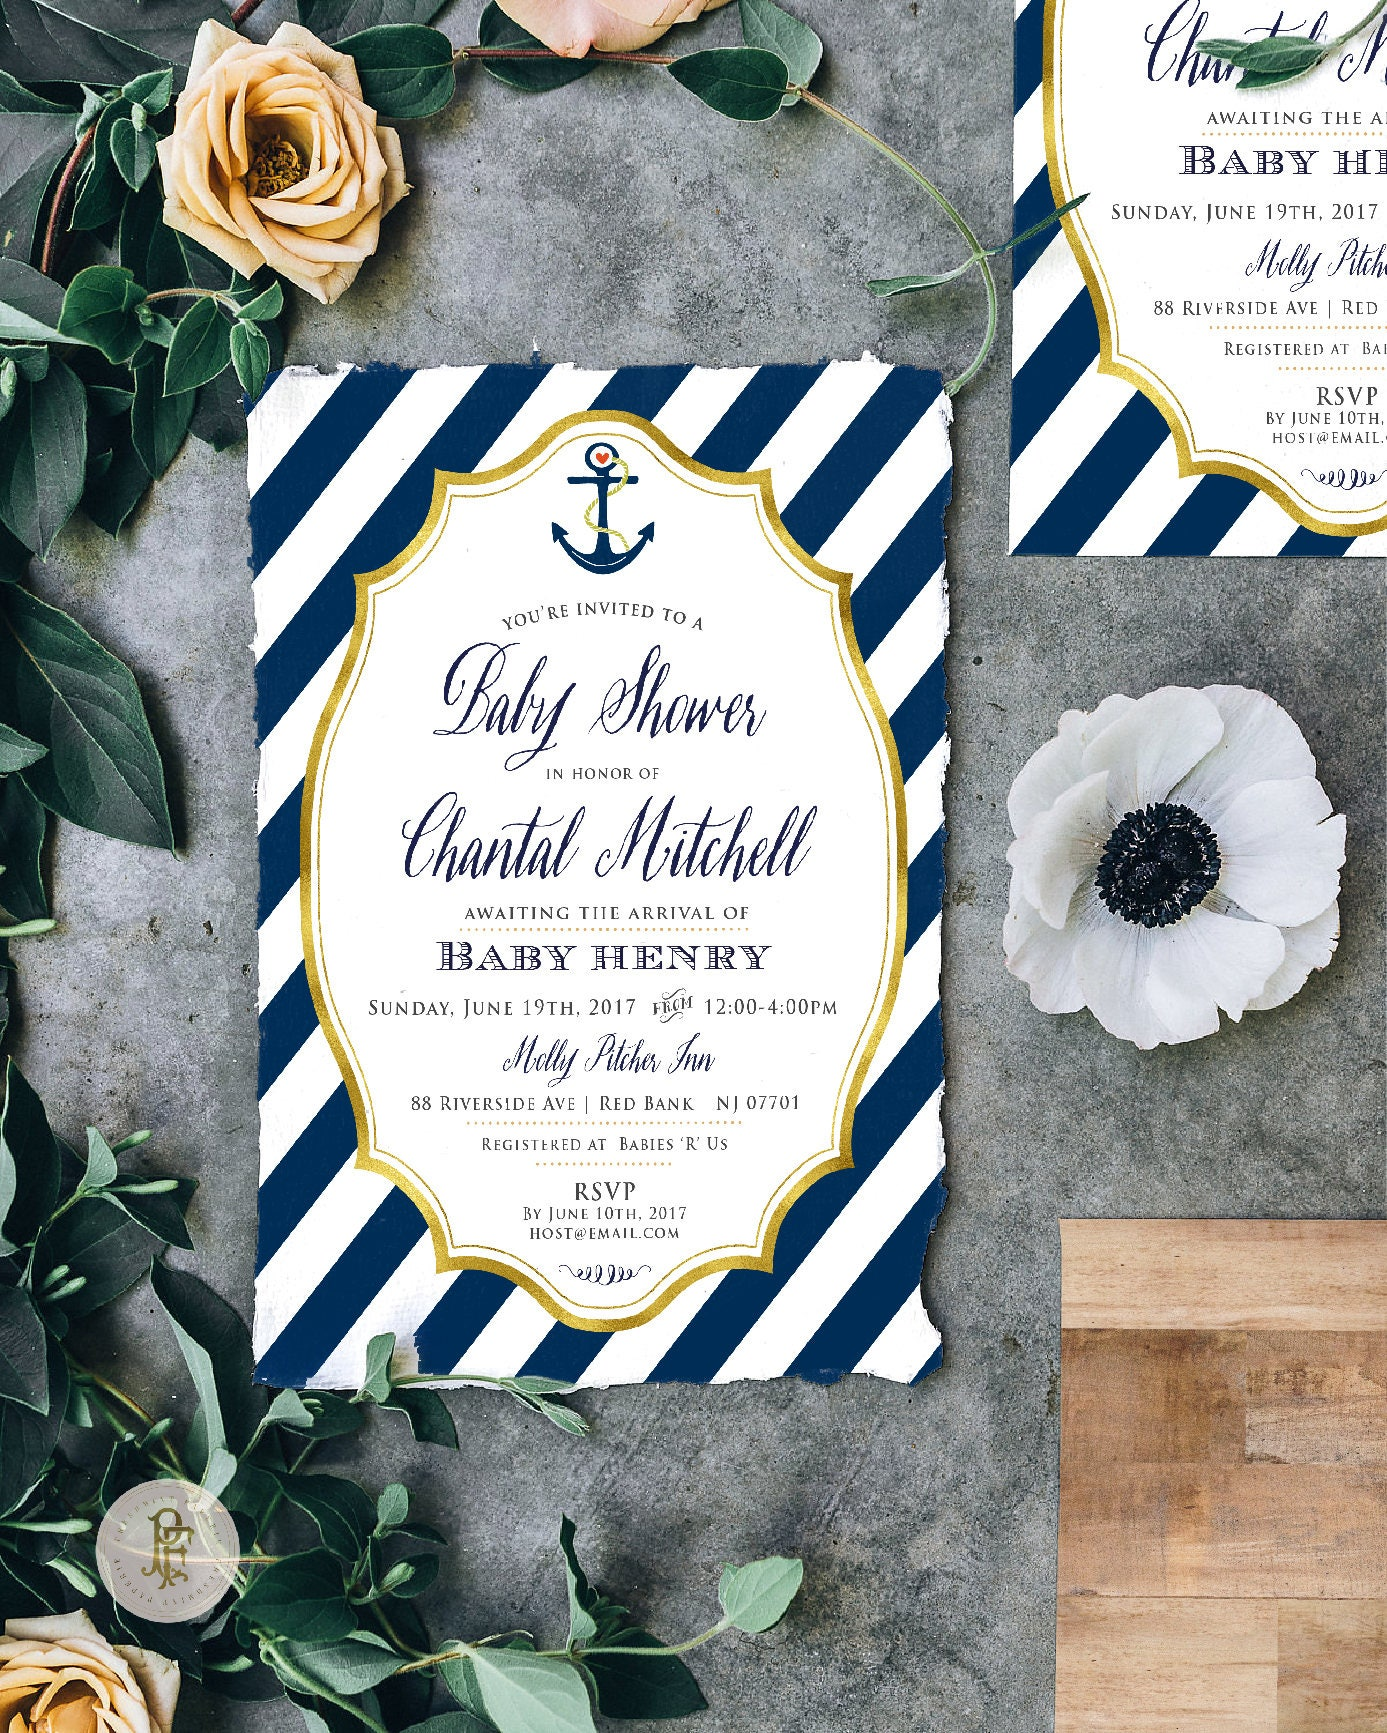 nautical invitation best ideas tedious skipping on theinvitelady for images personal pinterest opt baby handmade invitations shower